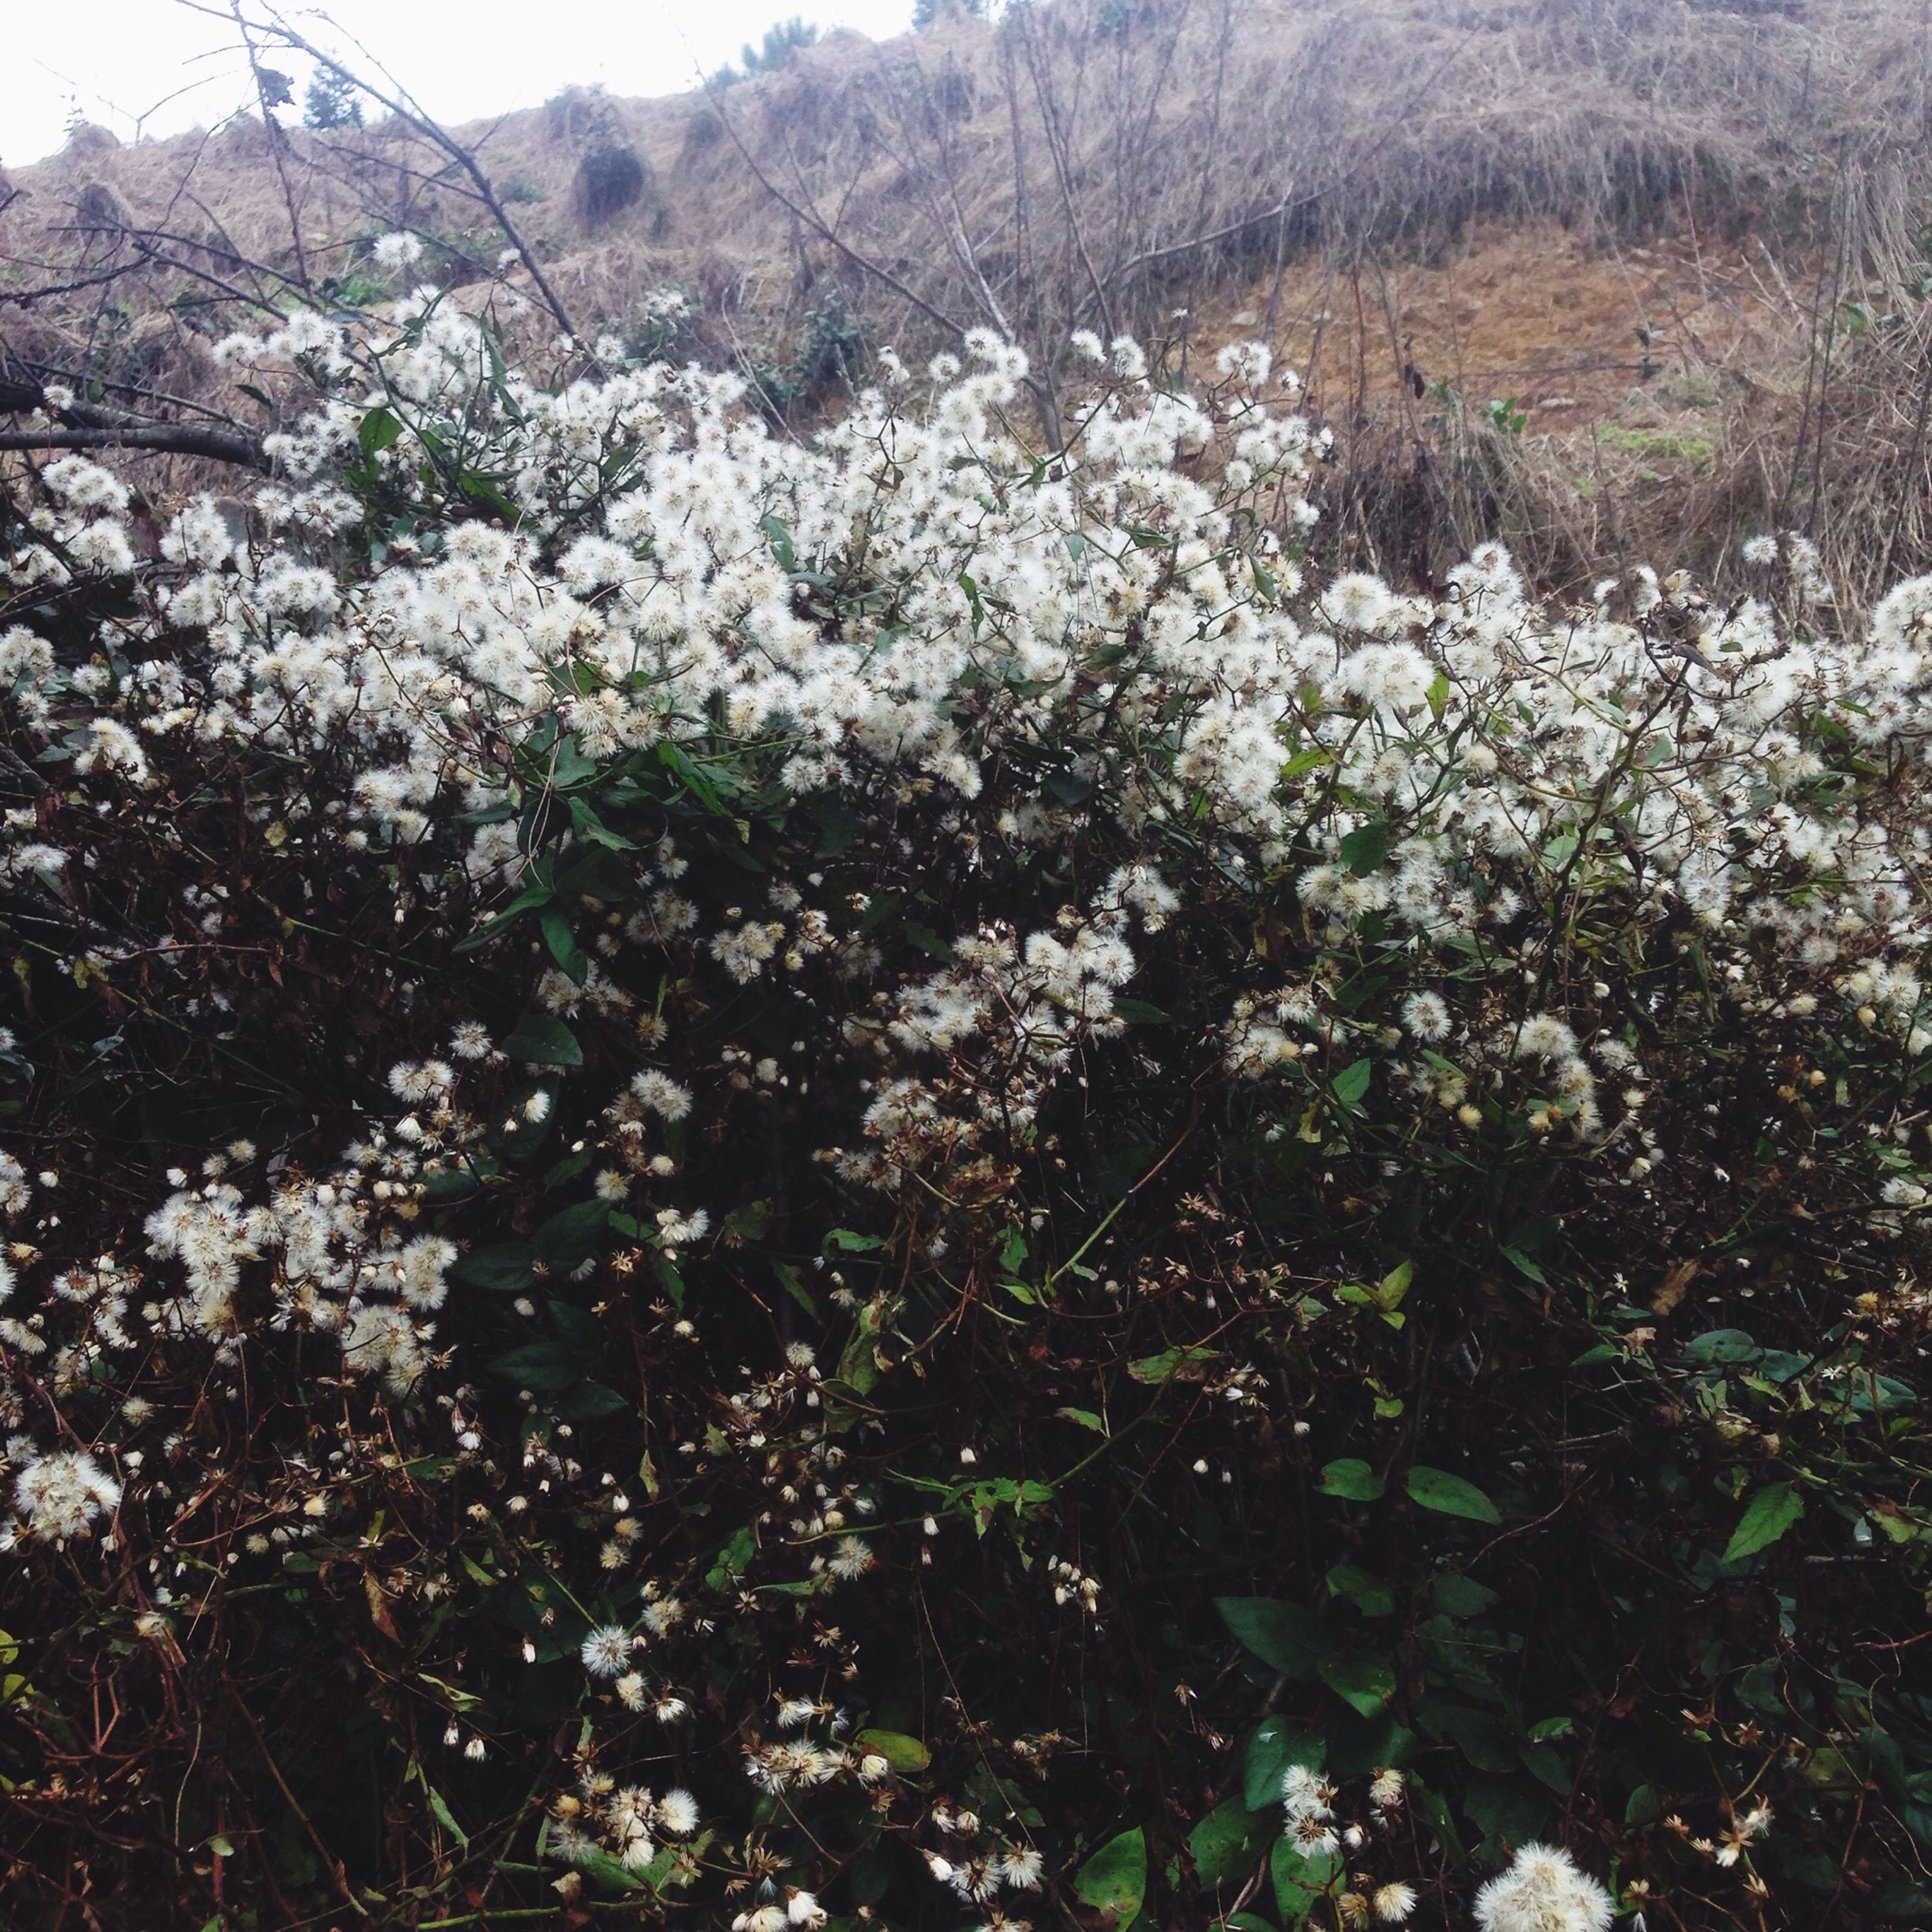 flower, growth, tree, beauty in nature, nature, freshness, tranquility, white color, fragility, tranquil scene, mountain, blooming, plant, field, scenics, day, outdoors, in bloom, blossom, no people